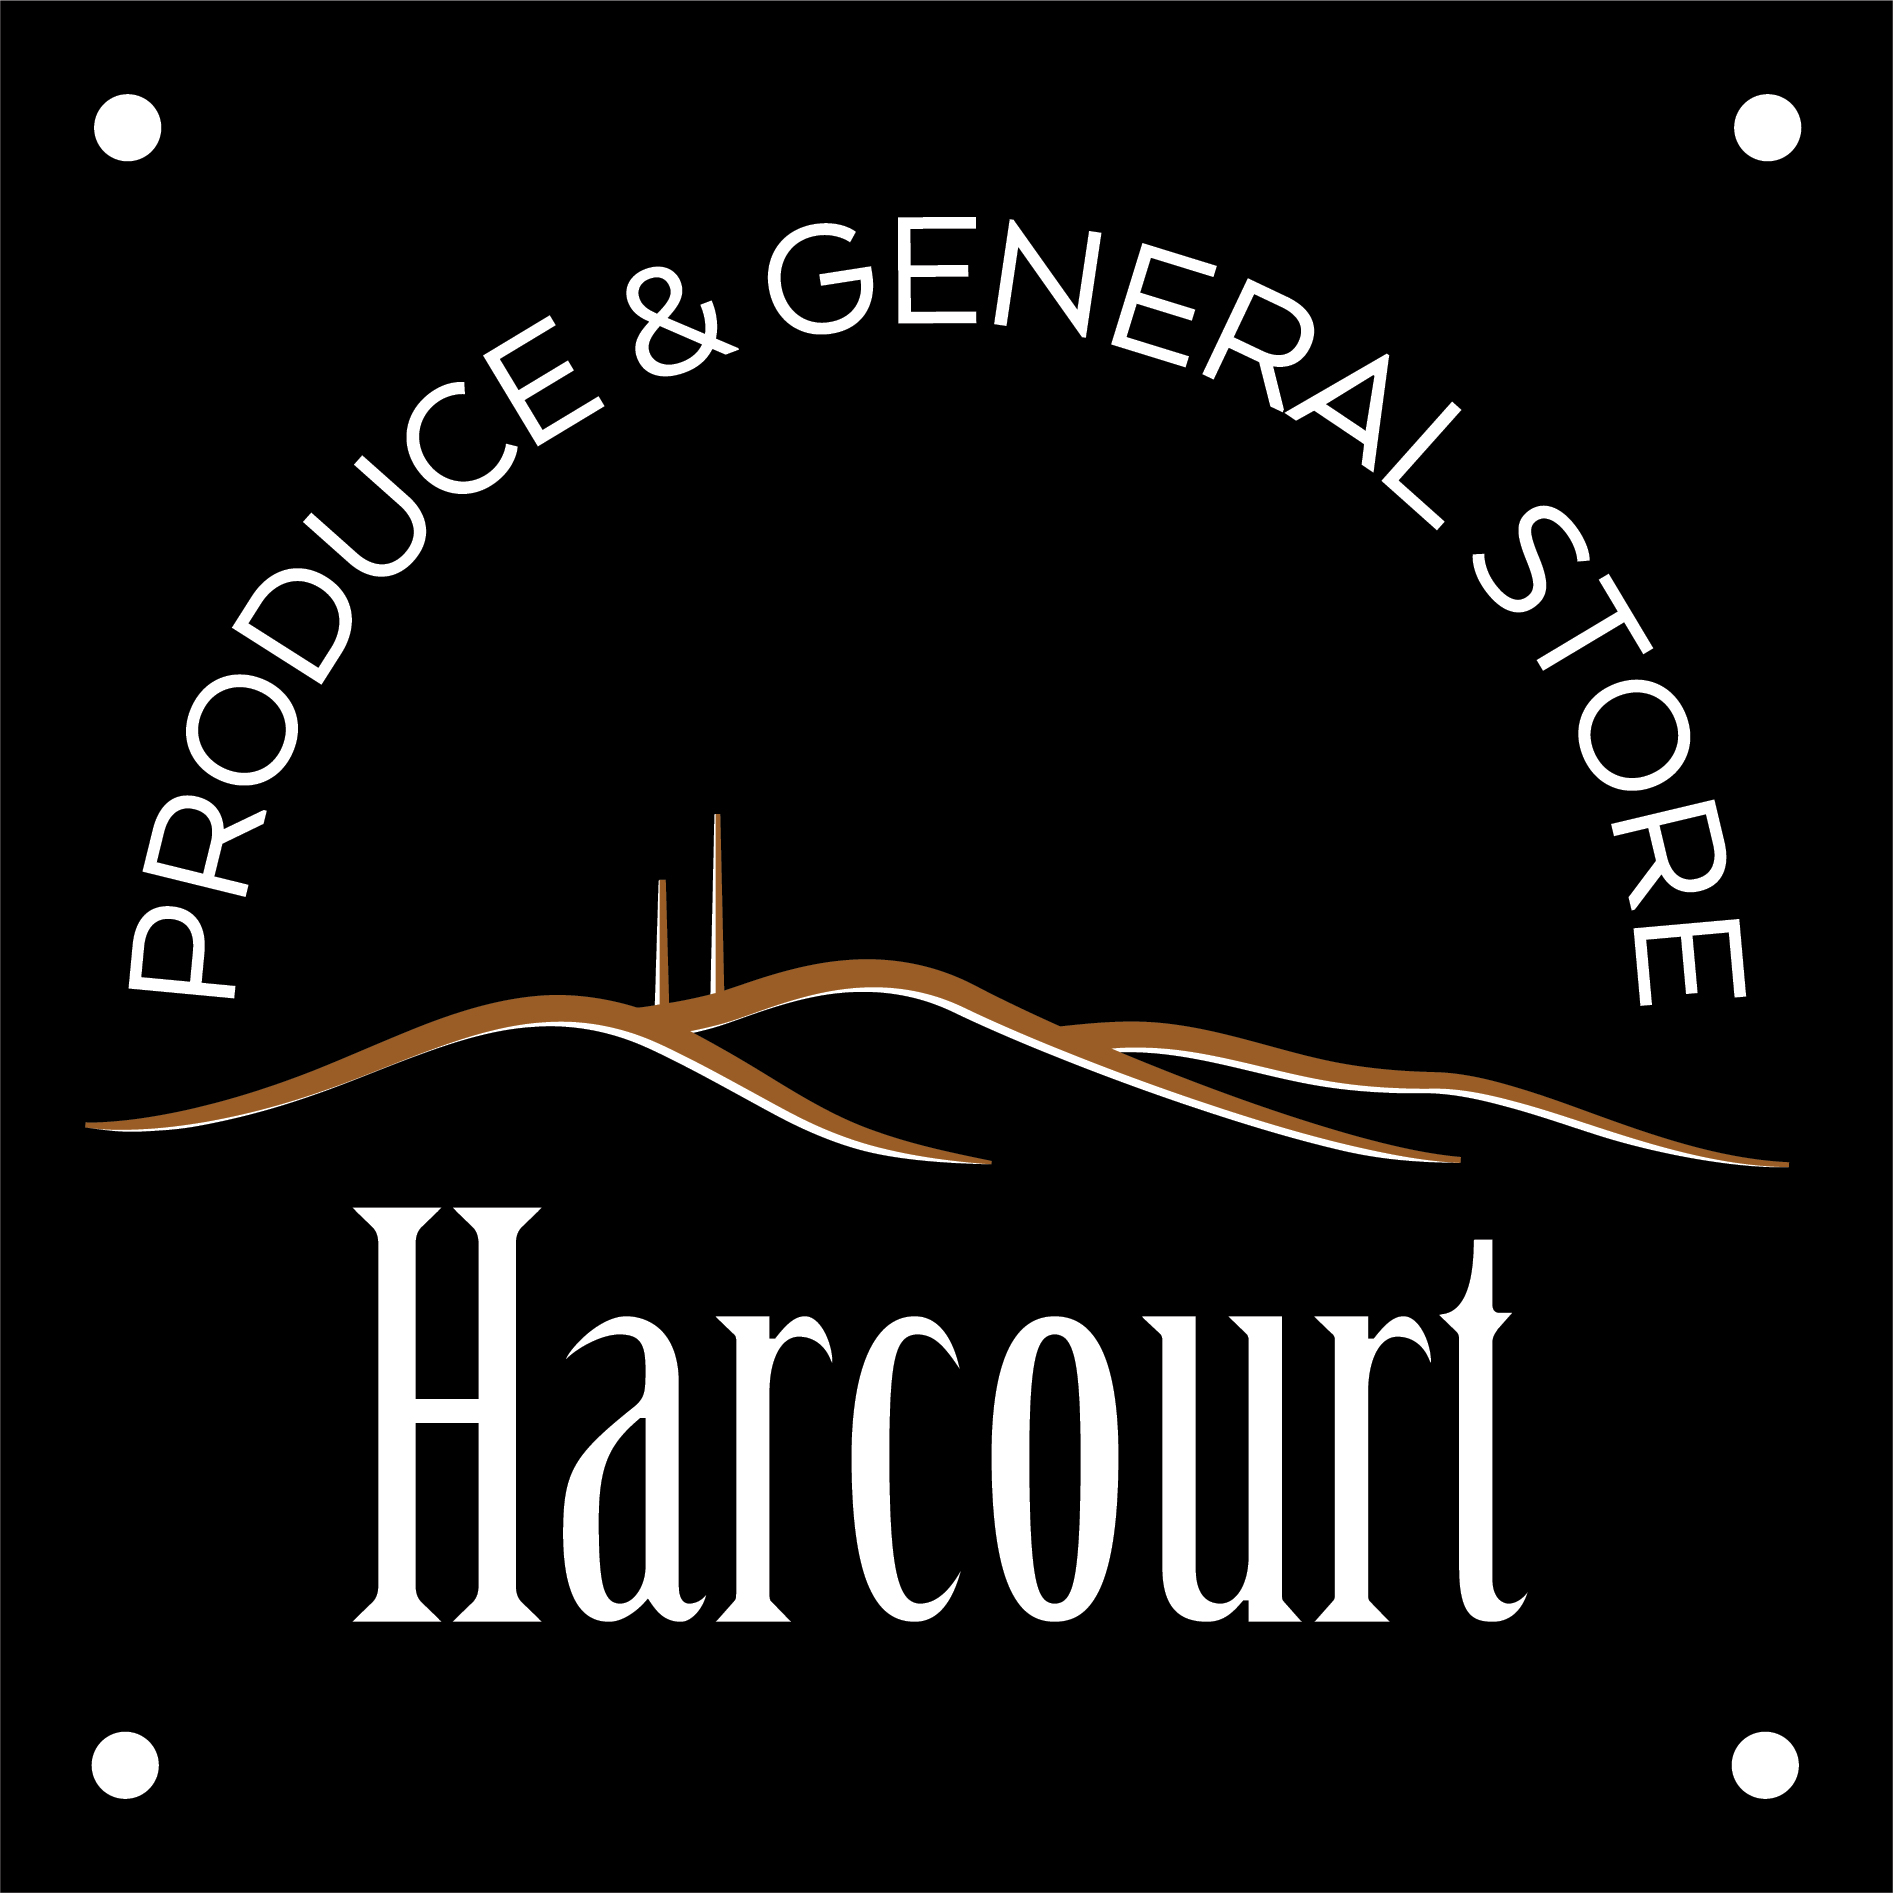 Harcourt Produce & General Store